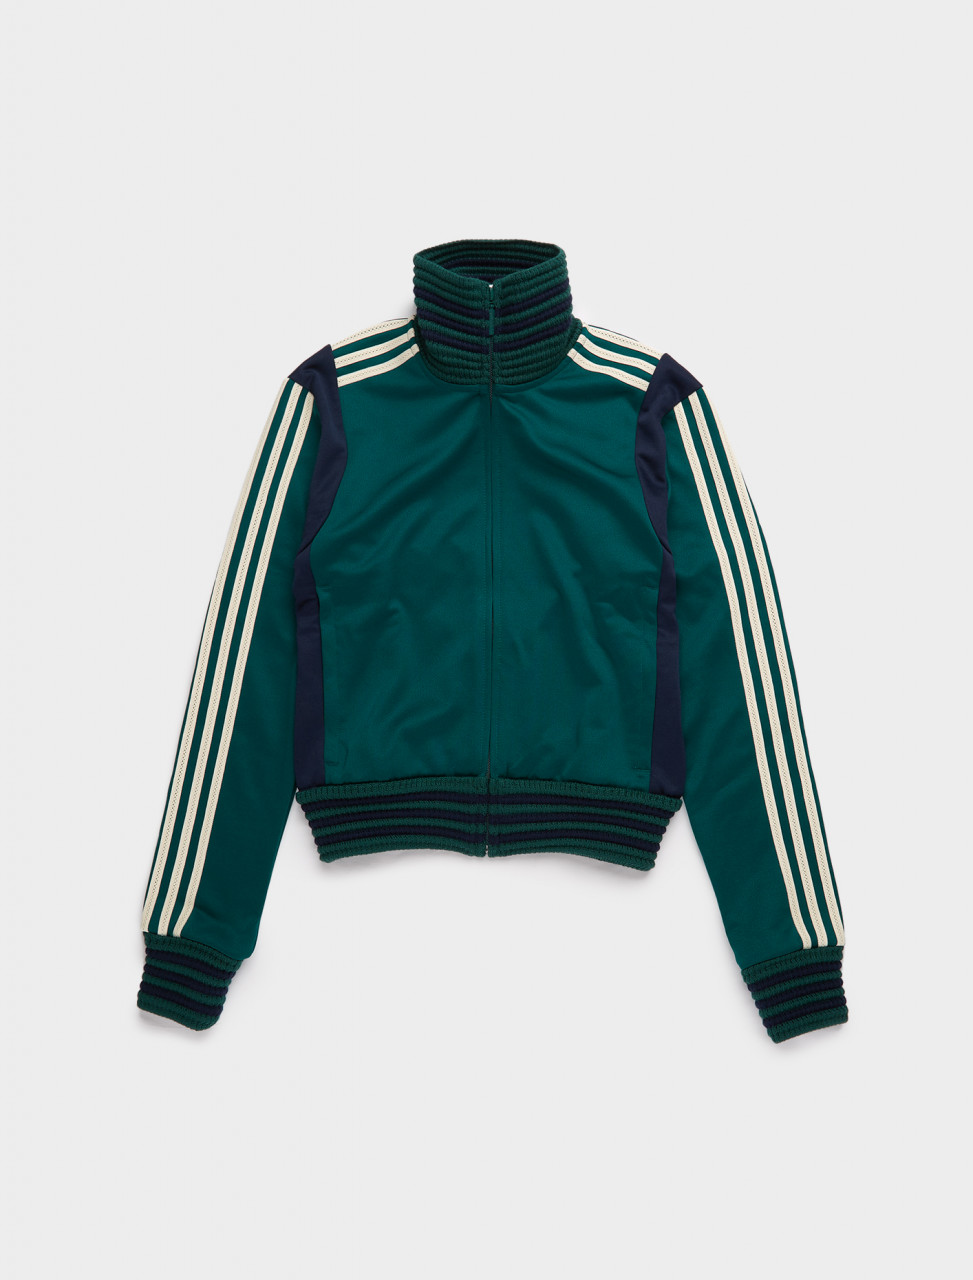 GL5184 ADIDAS WALES BONNER LOVERS TRACK TOP